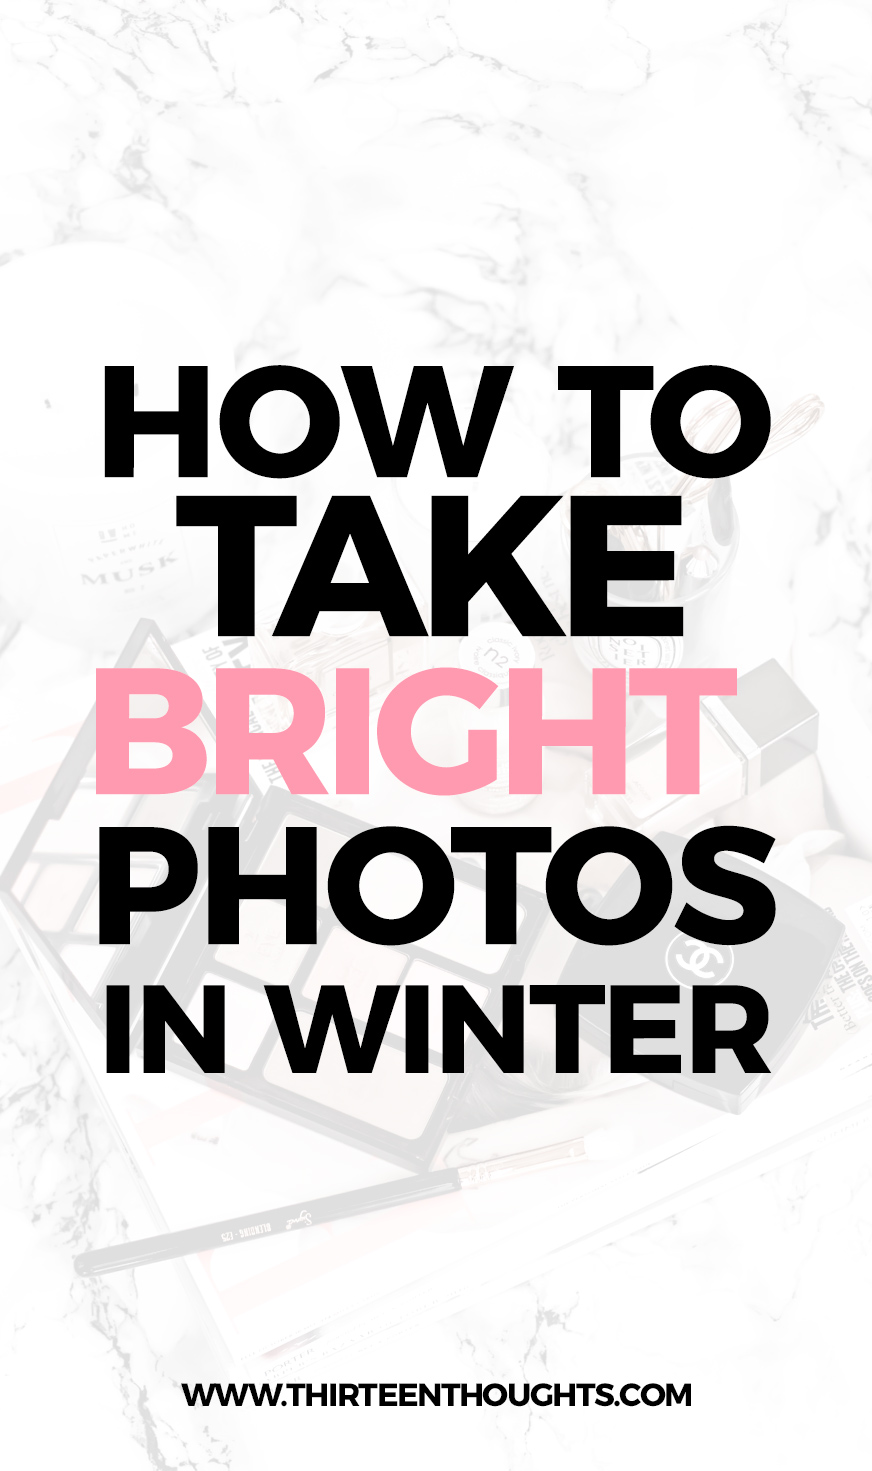 How to take bright blog photos in winter #blog #blogging #Bloggingtips #blogtips #photography #phototips #howto #lbloggers #tipsforbloggers